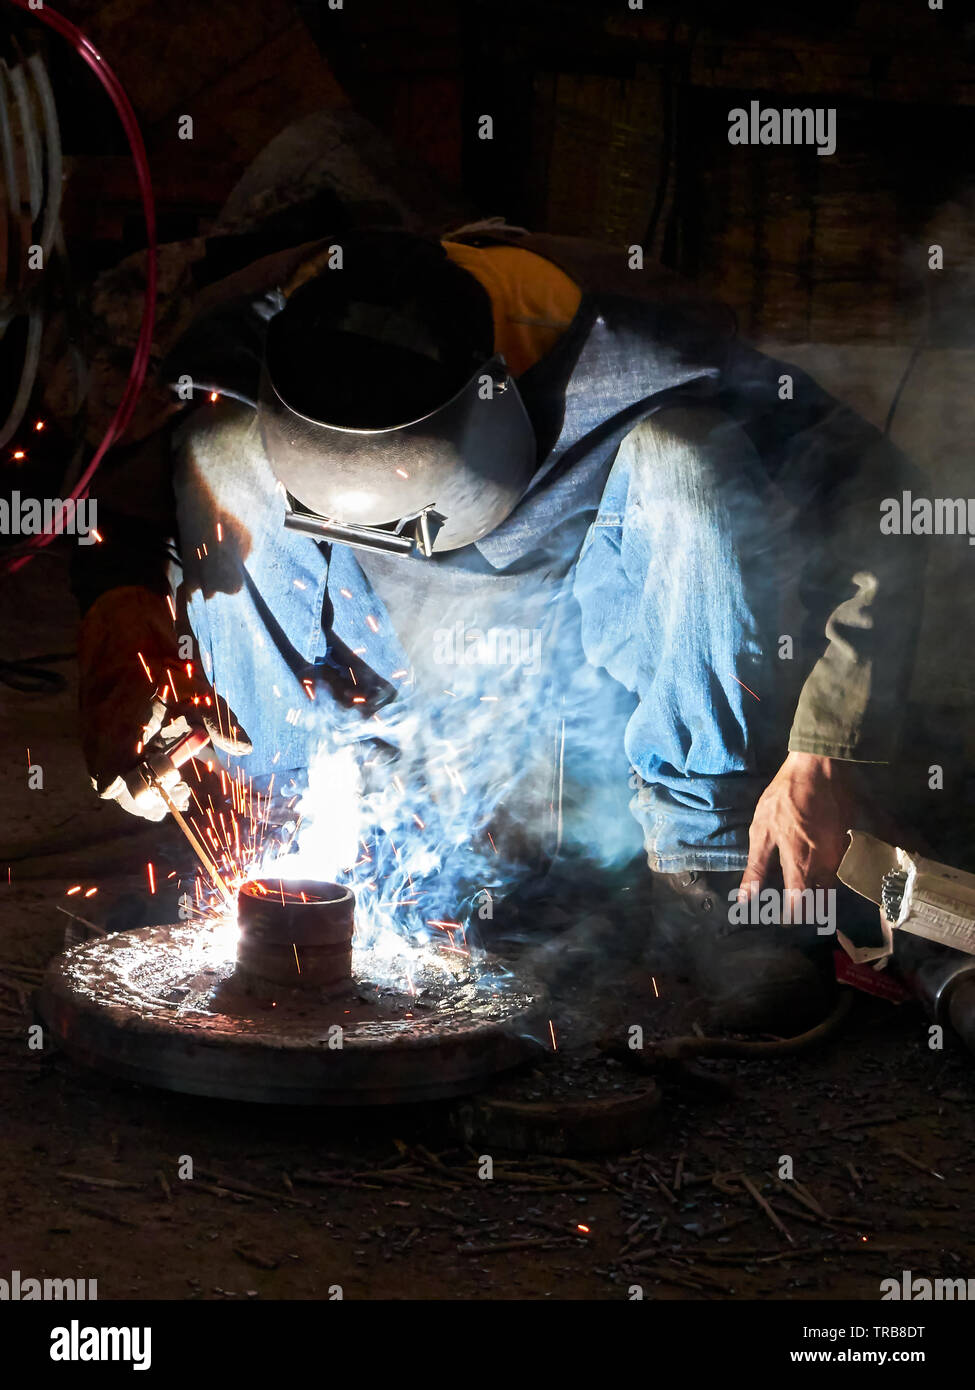 Close-up of a man dressed in jeans does a welding job in a dark place with sparks flying around, seen in the Philippines - Stock Image